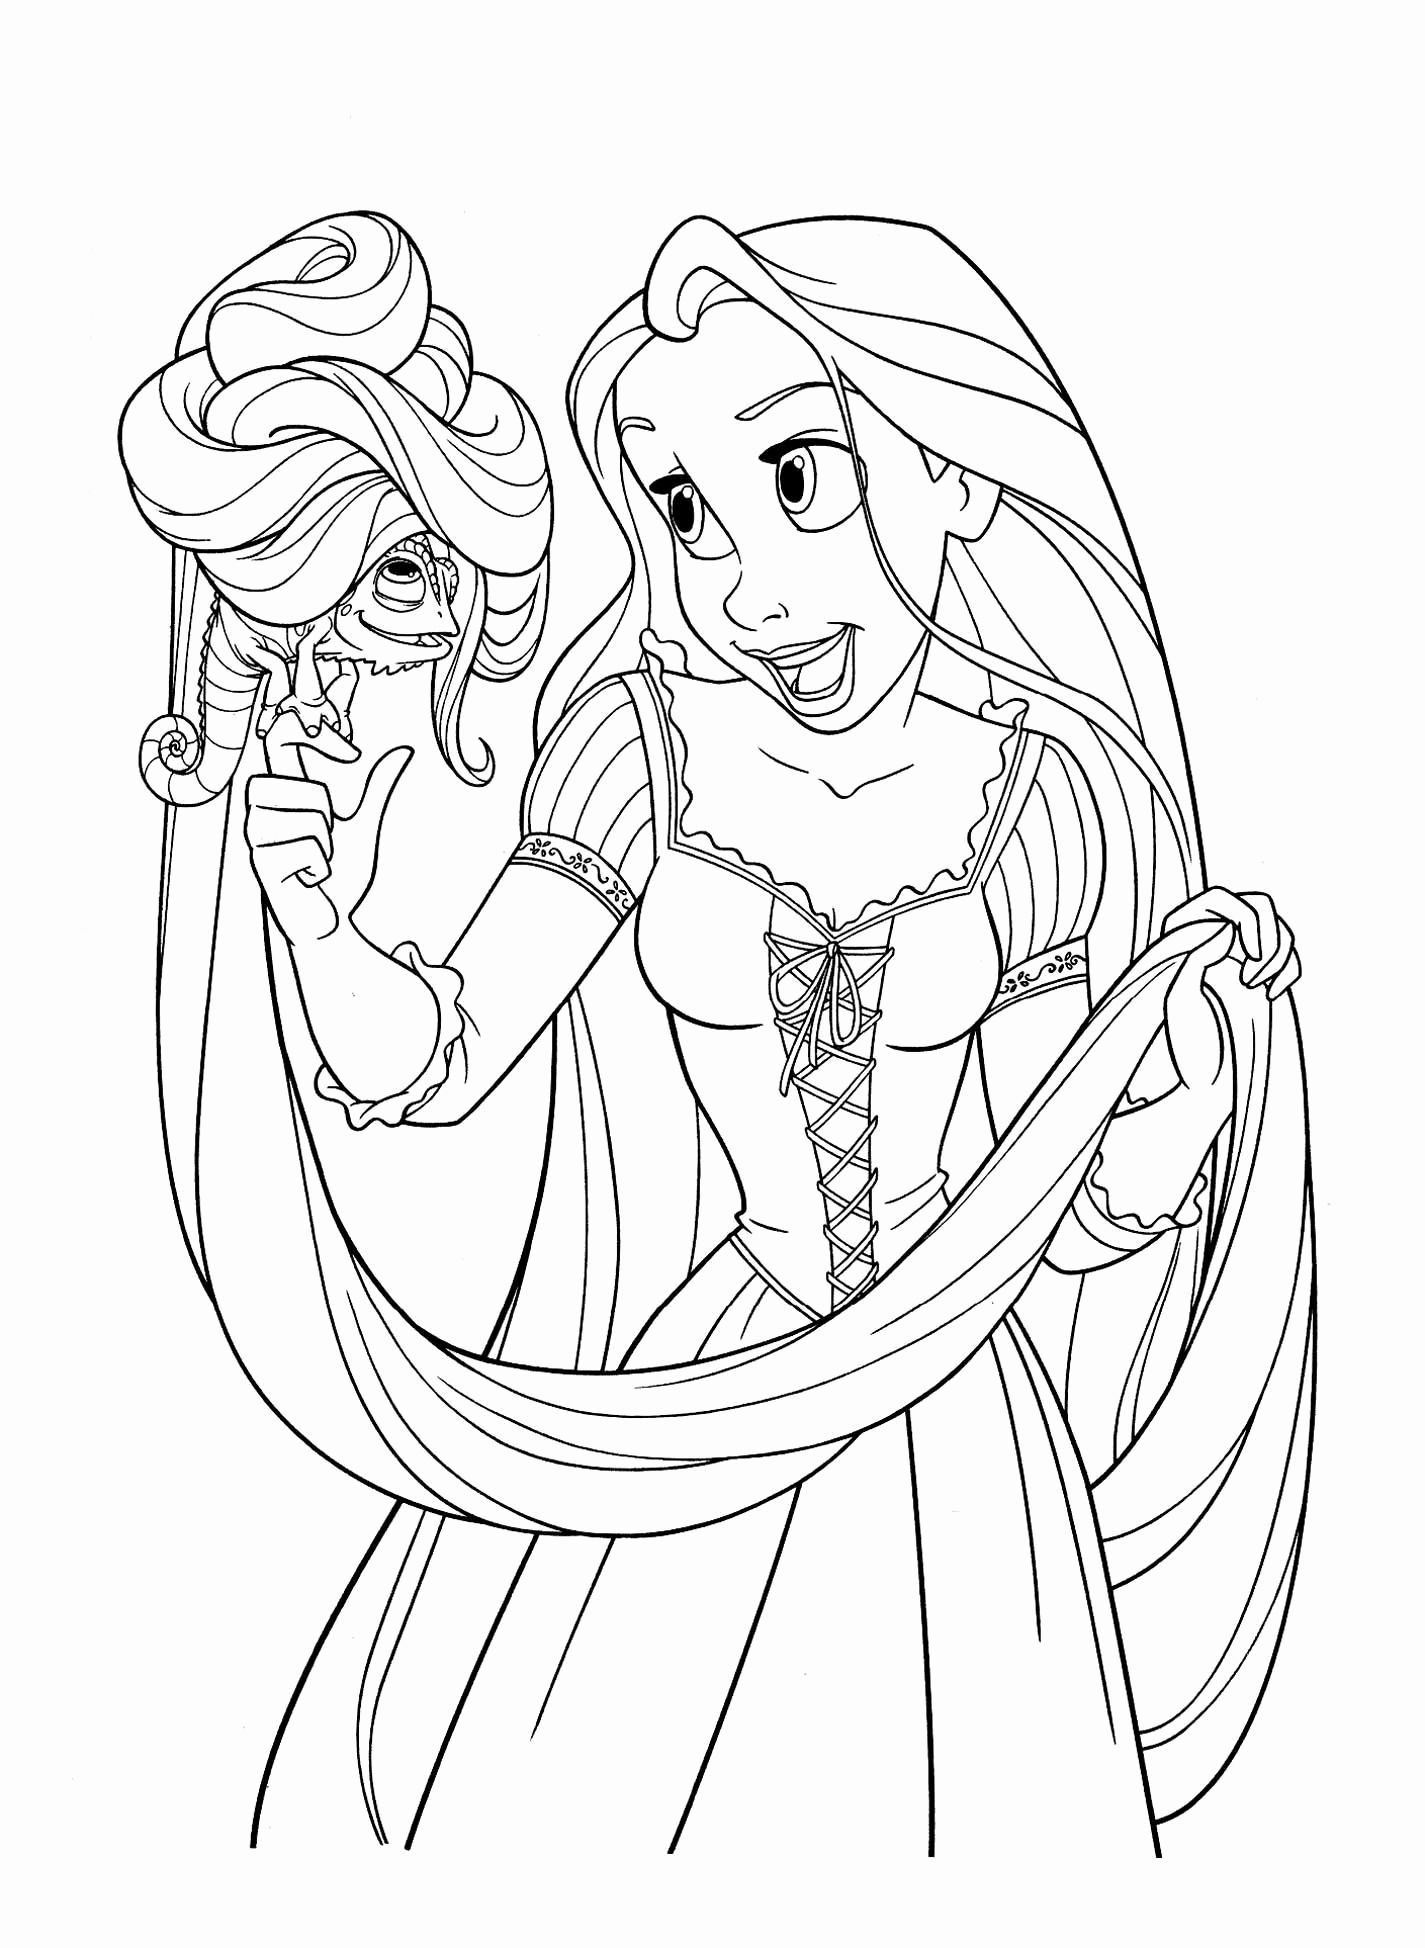 Disney Ripansl Coloring Pages For Kids In 2020 Tangled Coloring Pages Disney Coloring Sheets Princess Coloring Pages